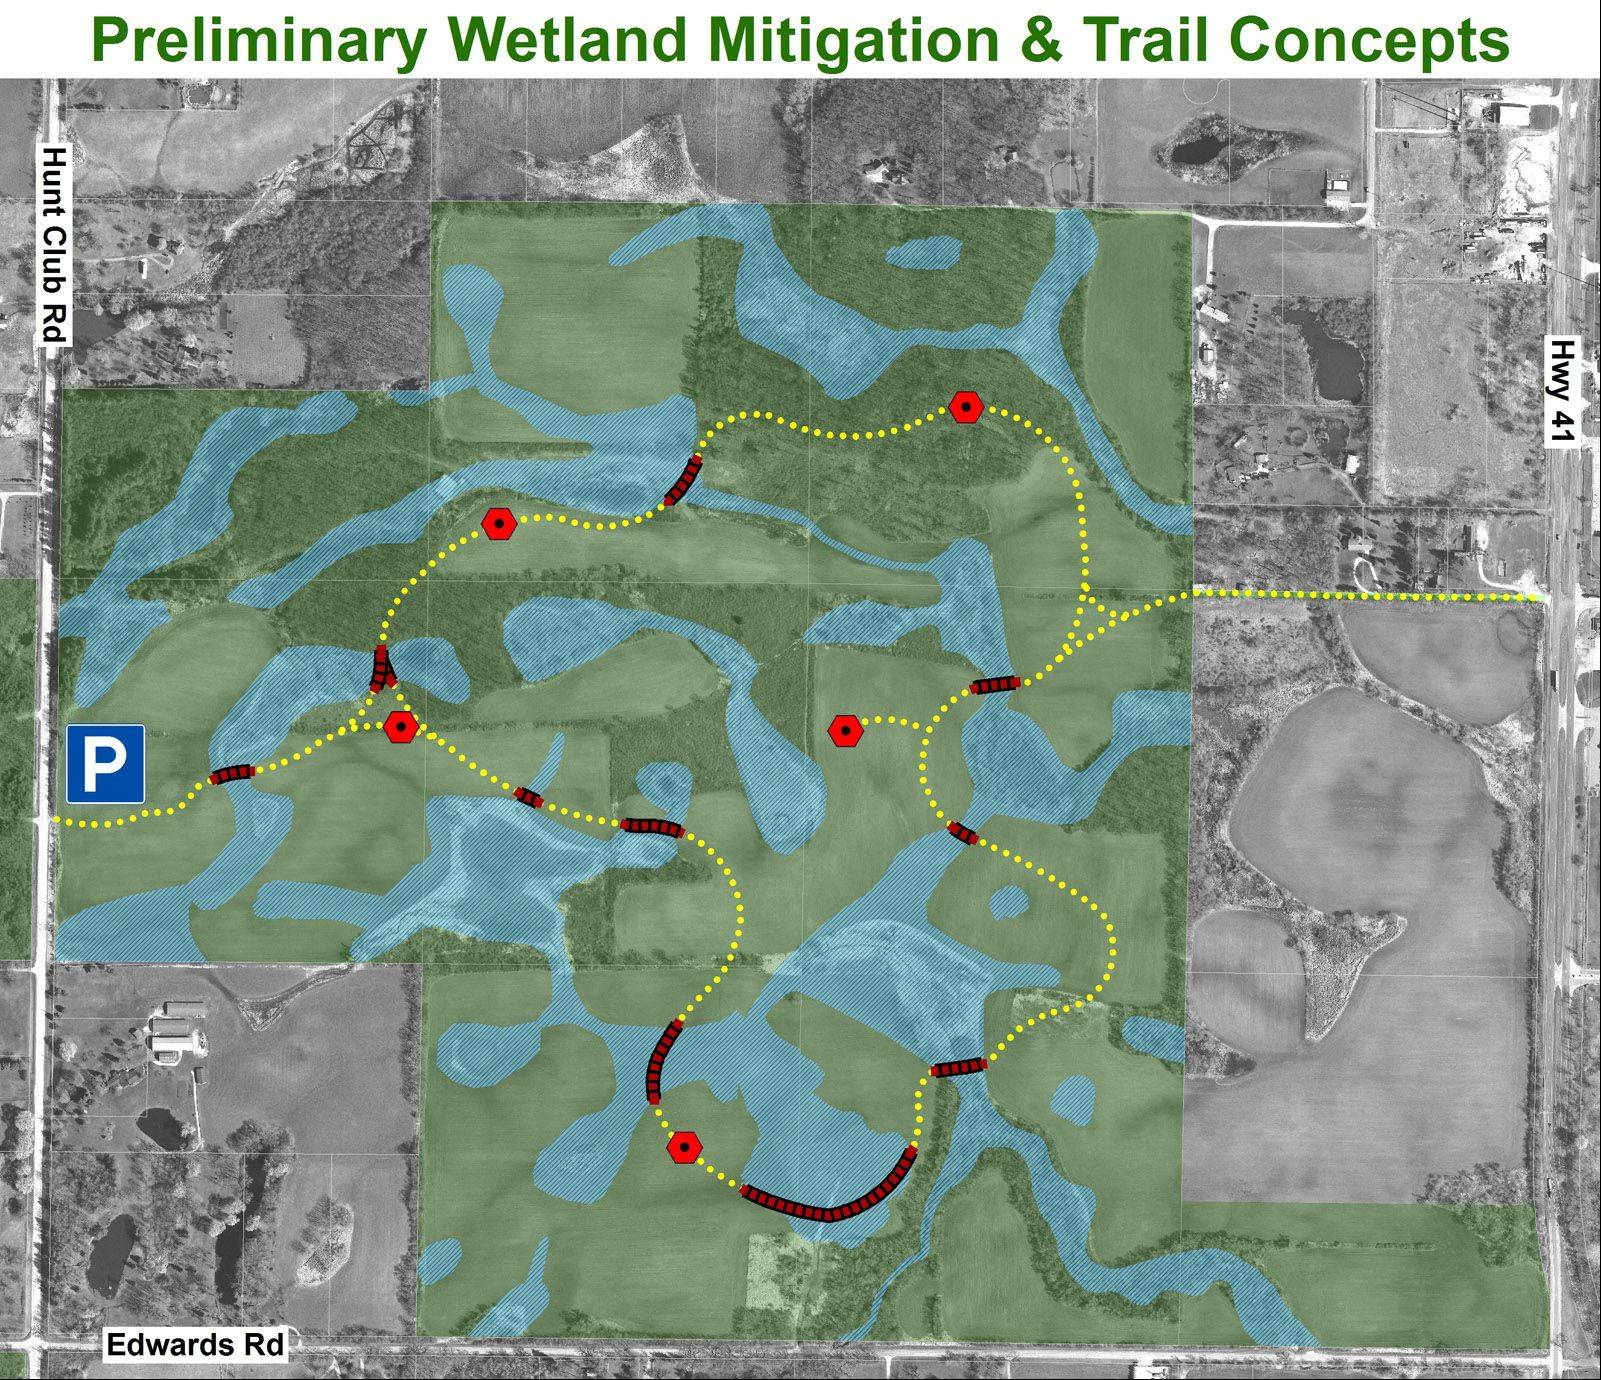 Compensating for wetlands to be affected by the Elgin-O'Hare Expressway extension could result in up to $9 million in improvements at Pine Dunes Forest Preserve near Wadsworth. The Illinois State Toll Highway Authority and Lake County Forest Preserve District are expected to pursue an agreement regarding trail and restoration work.